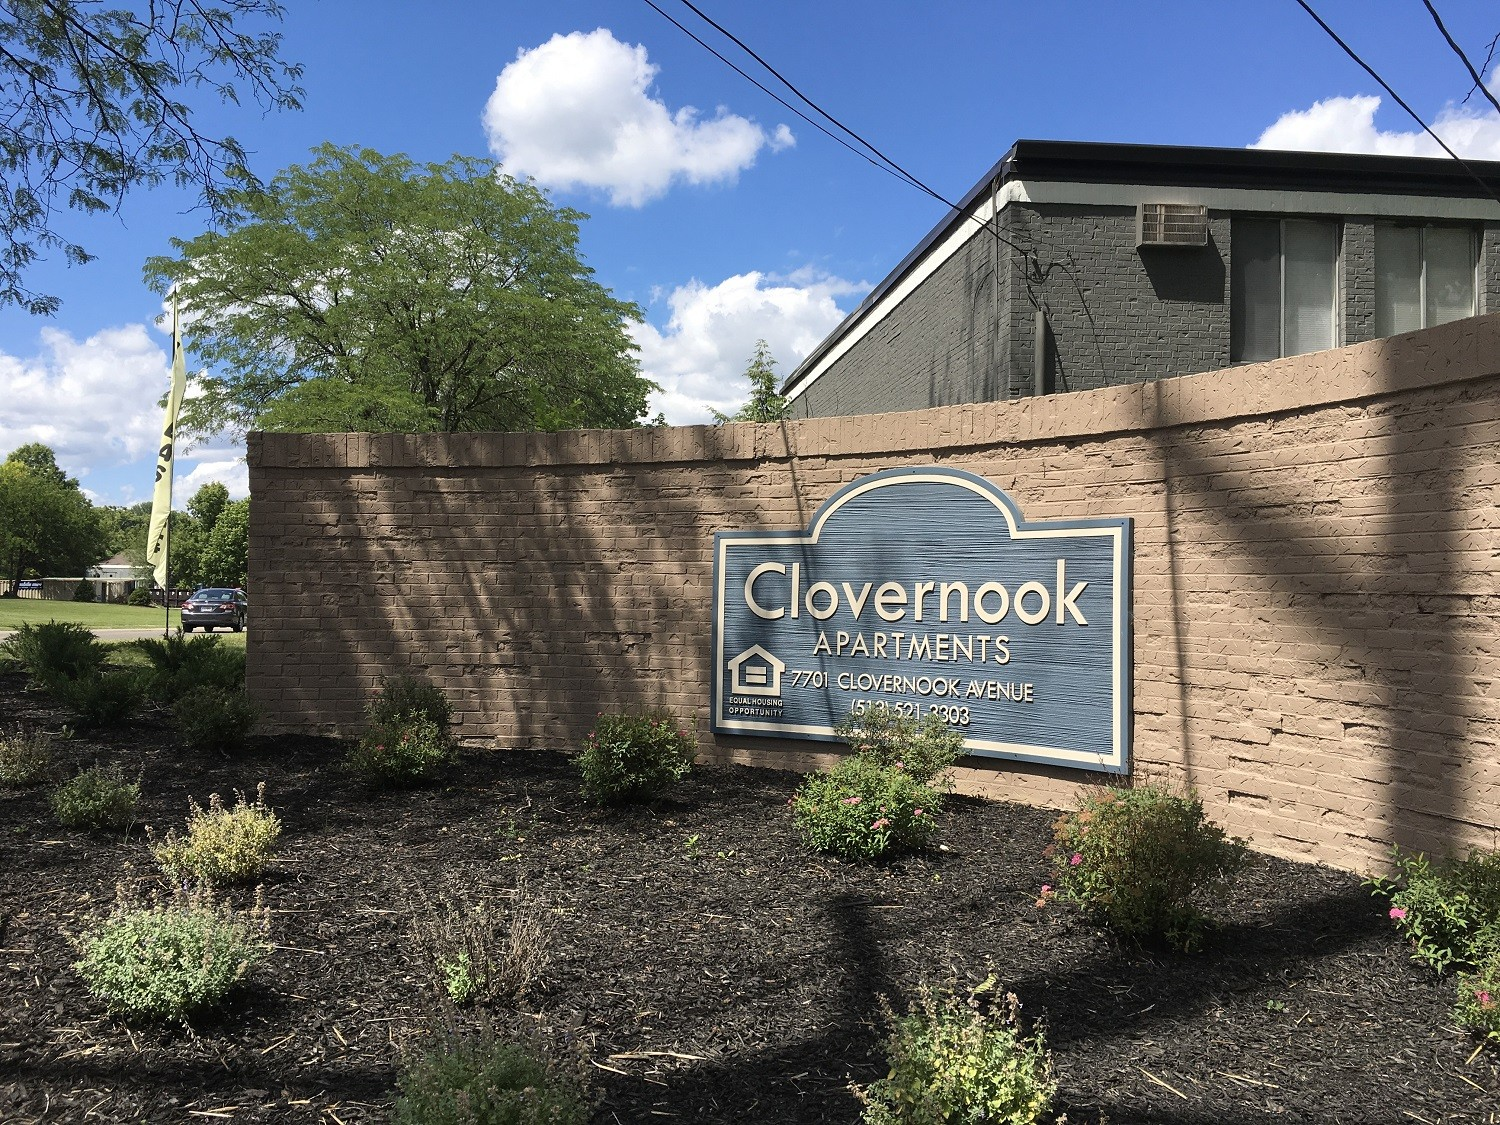 Clovernook Apartments